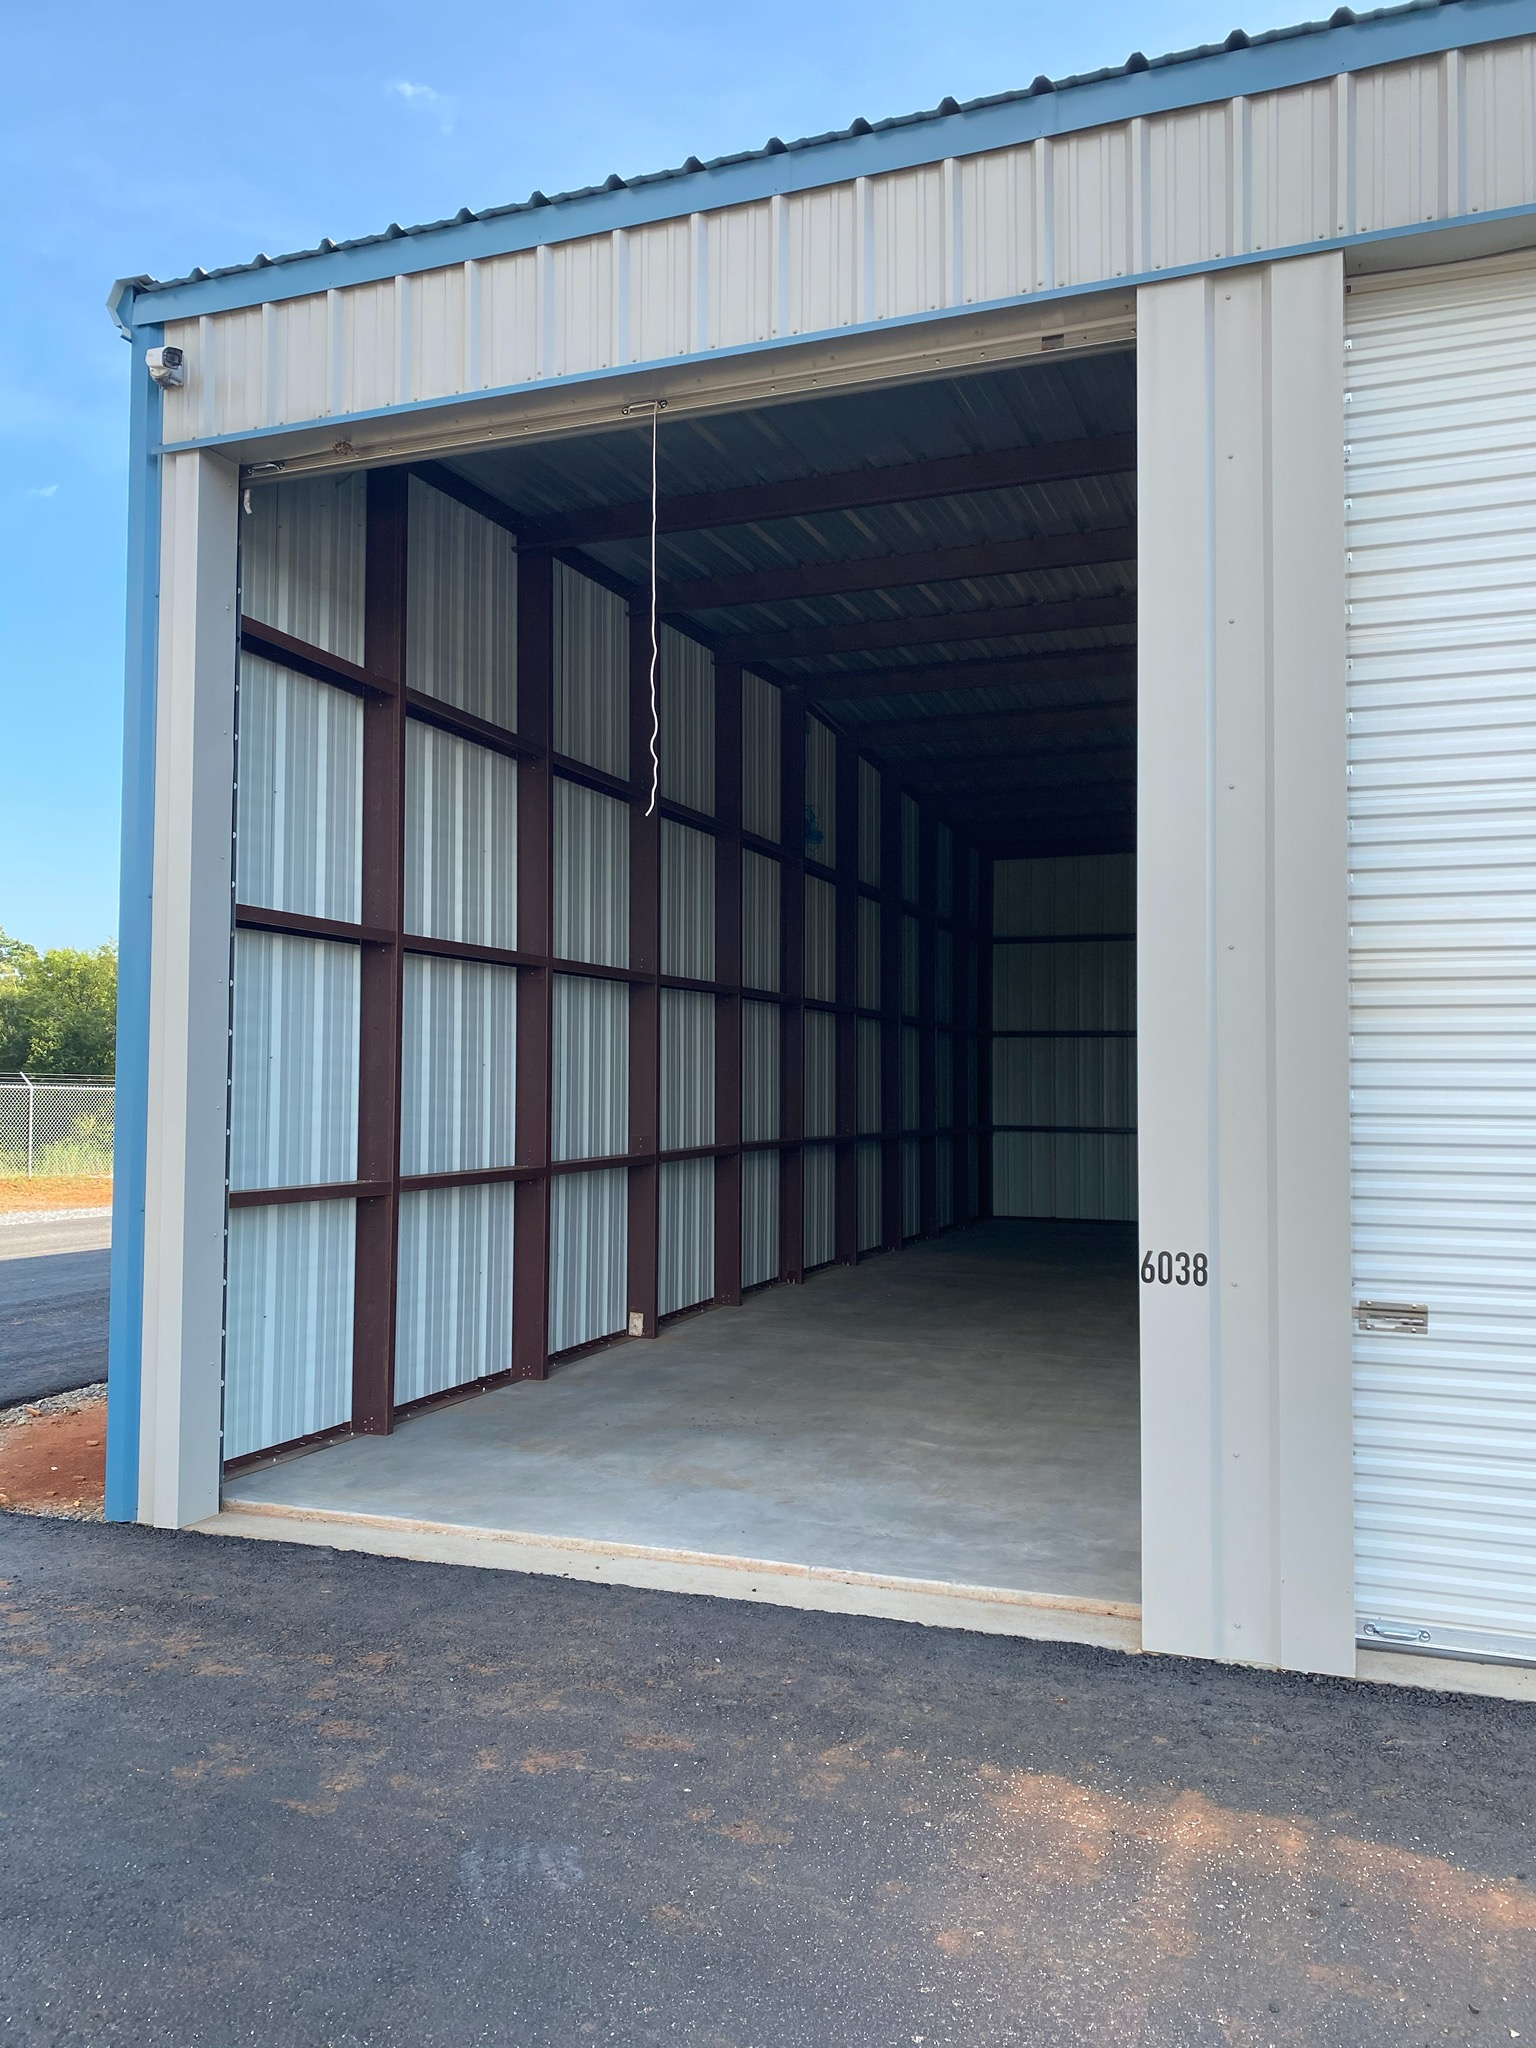 Super Sized Units 14x50 with 12 foot doors